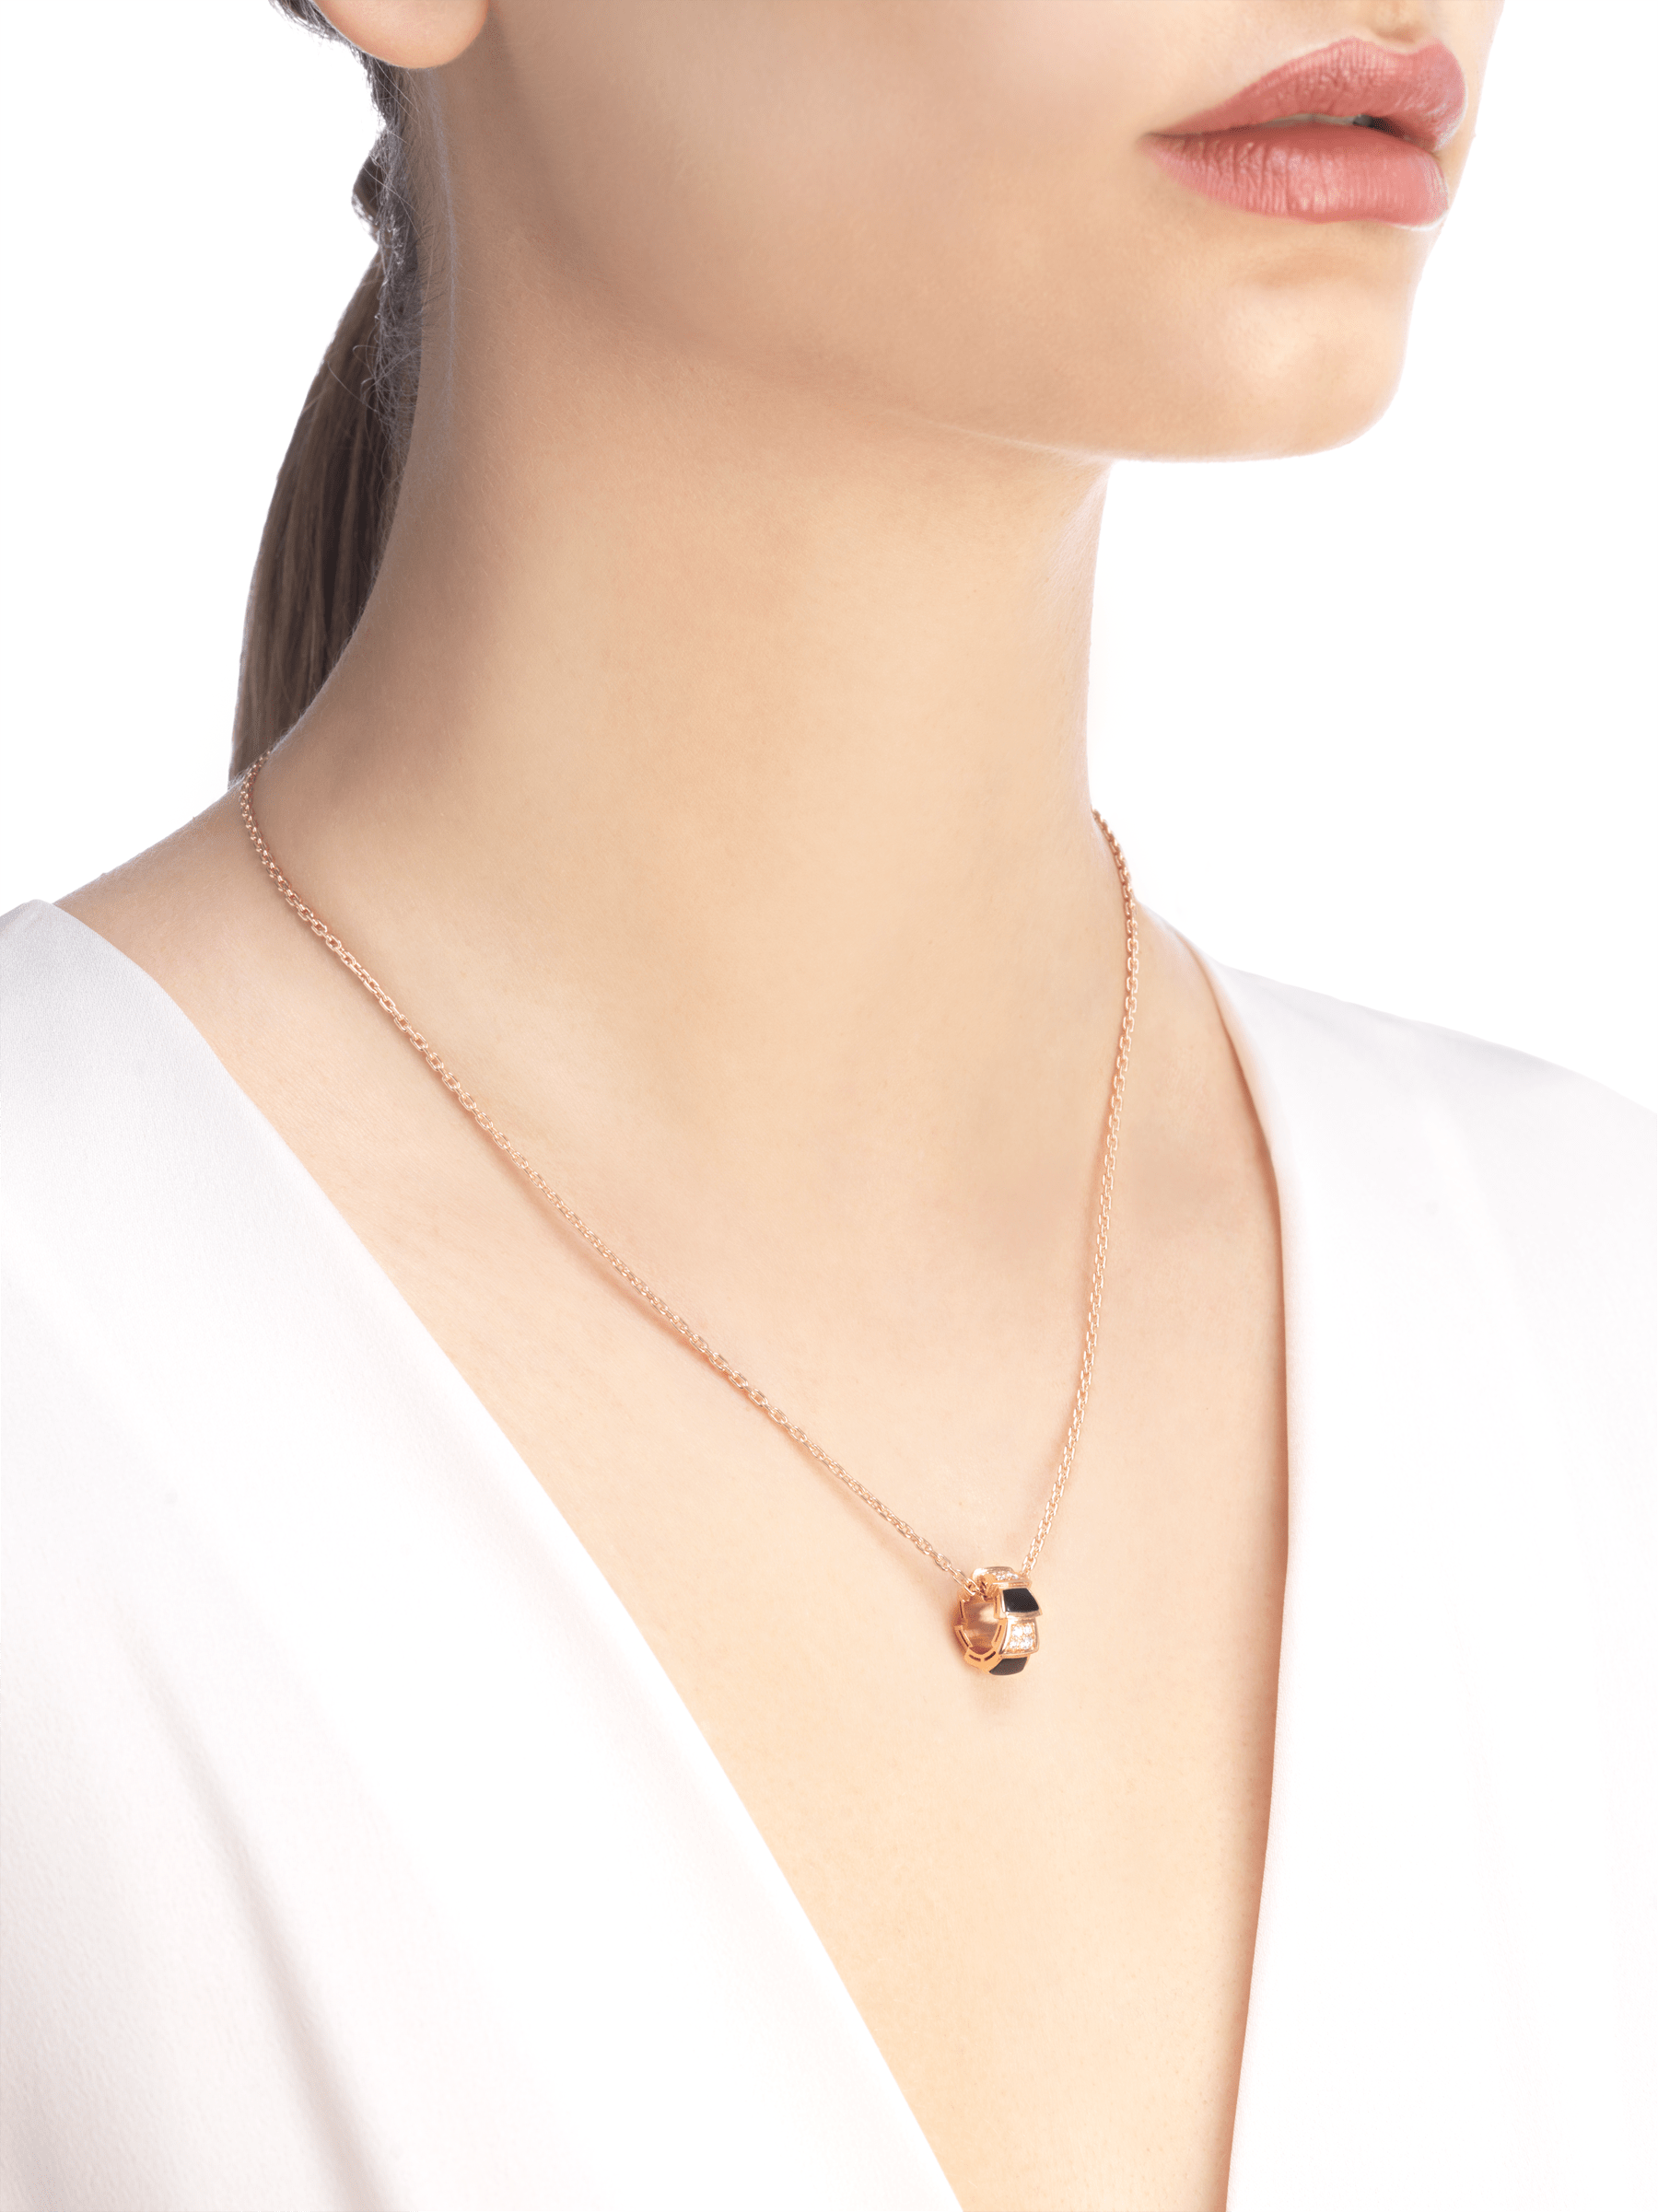 Serpenti Viper 18 kt rose gold necklace set with onyx elements and pavé diamonds on the pendant. 356554 image 4